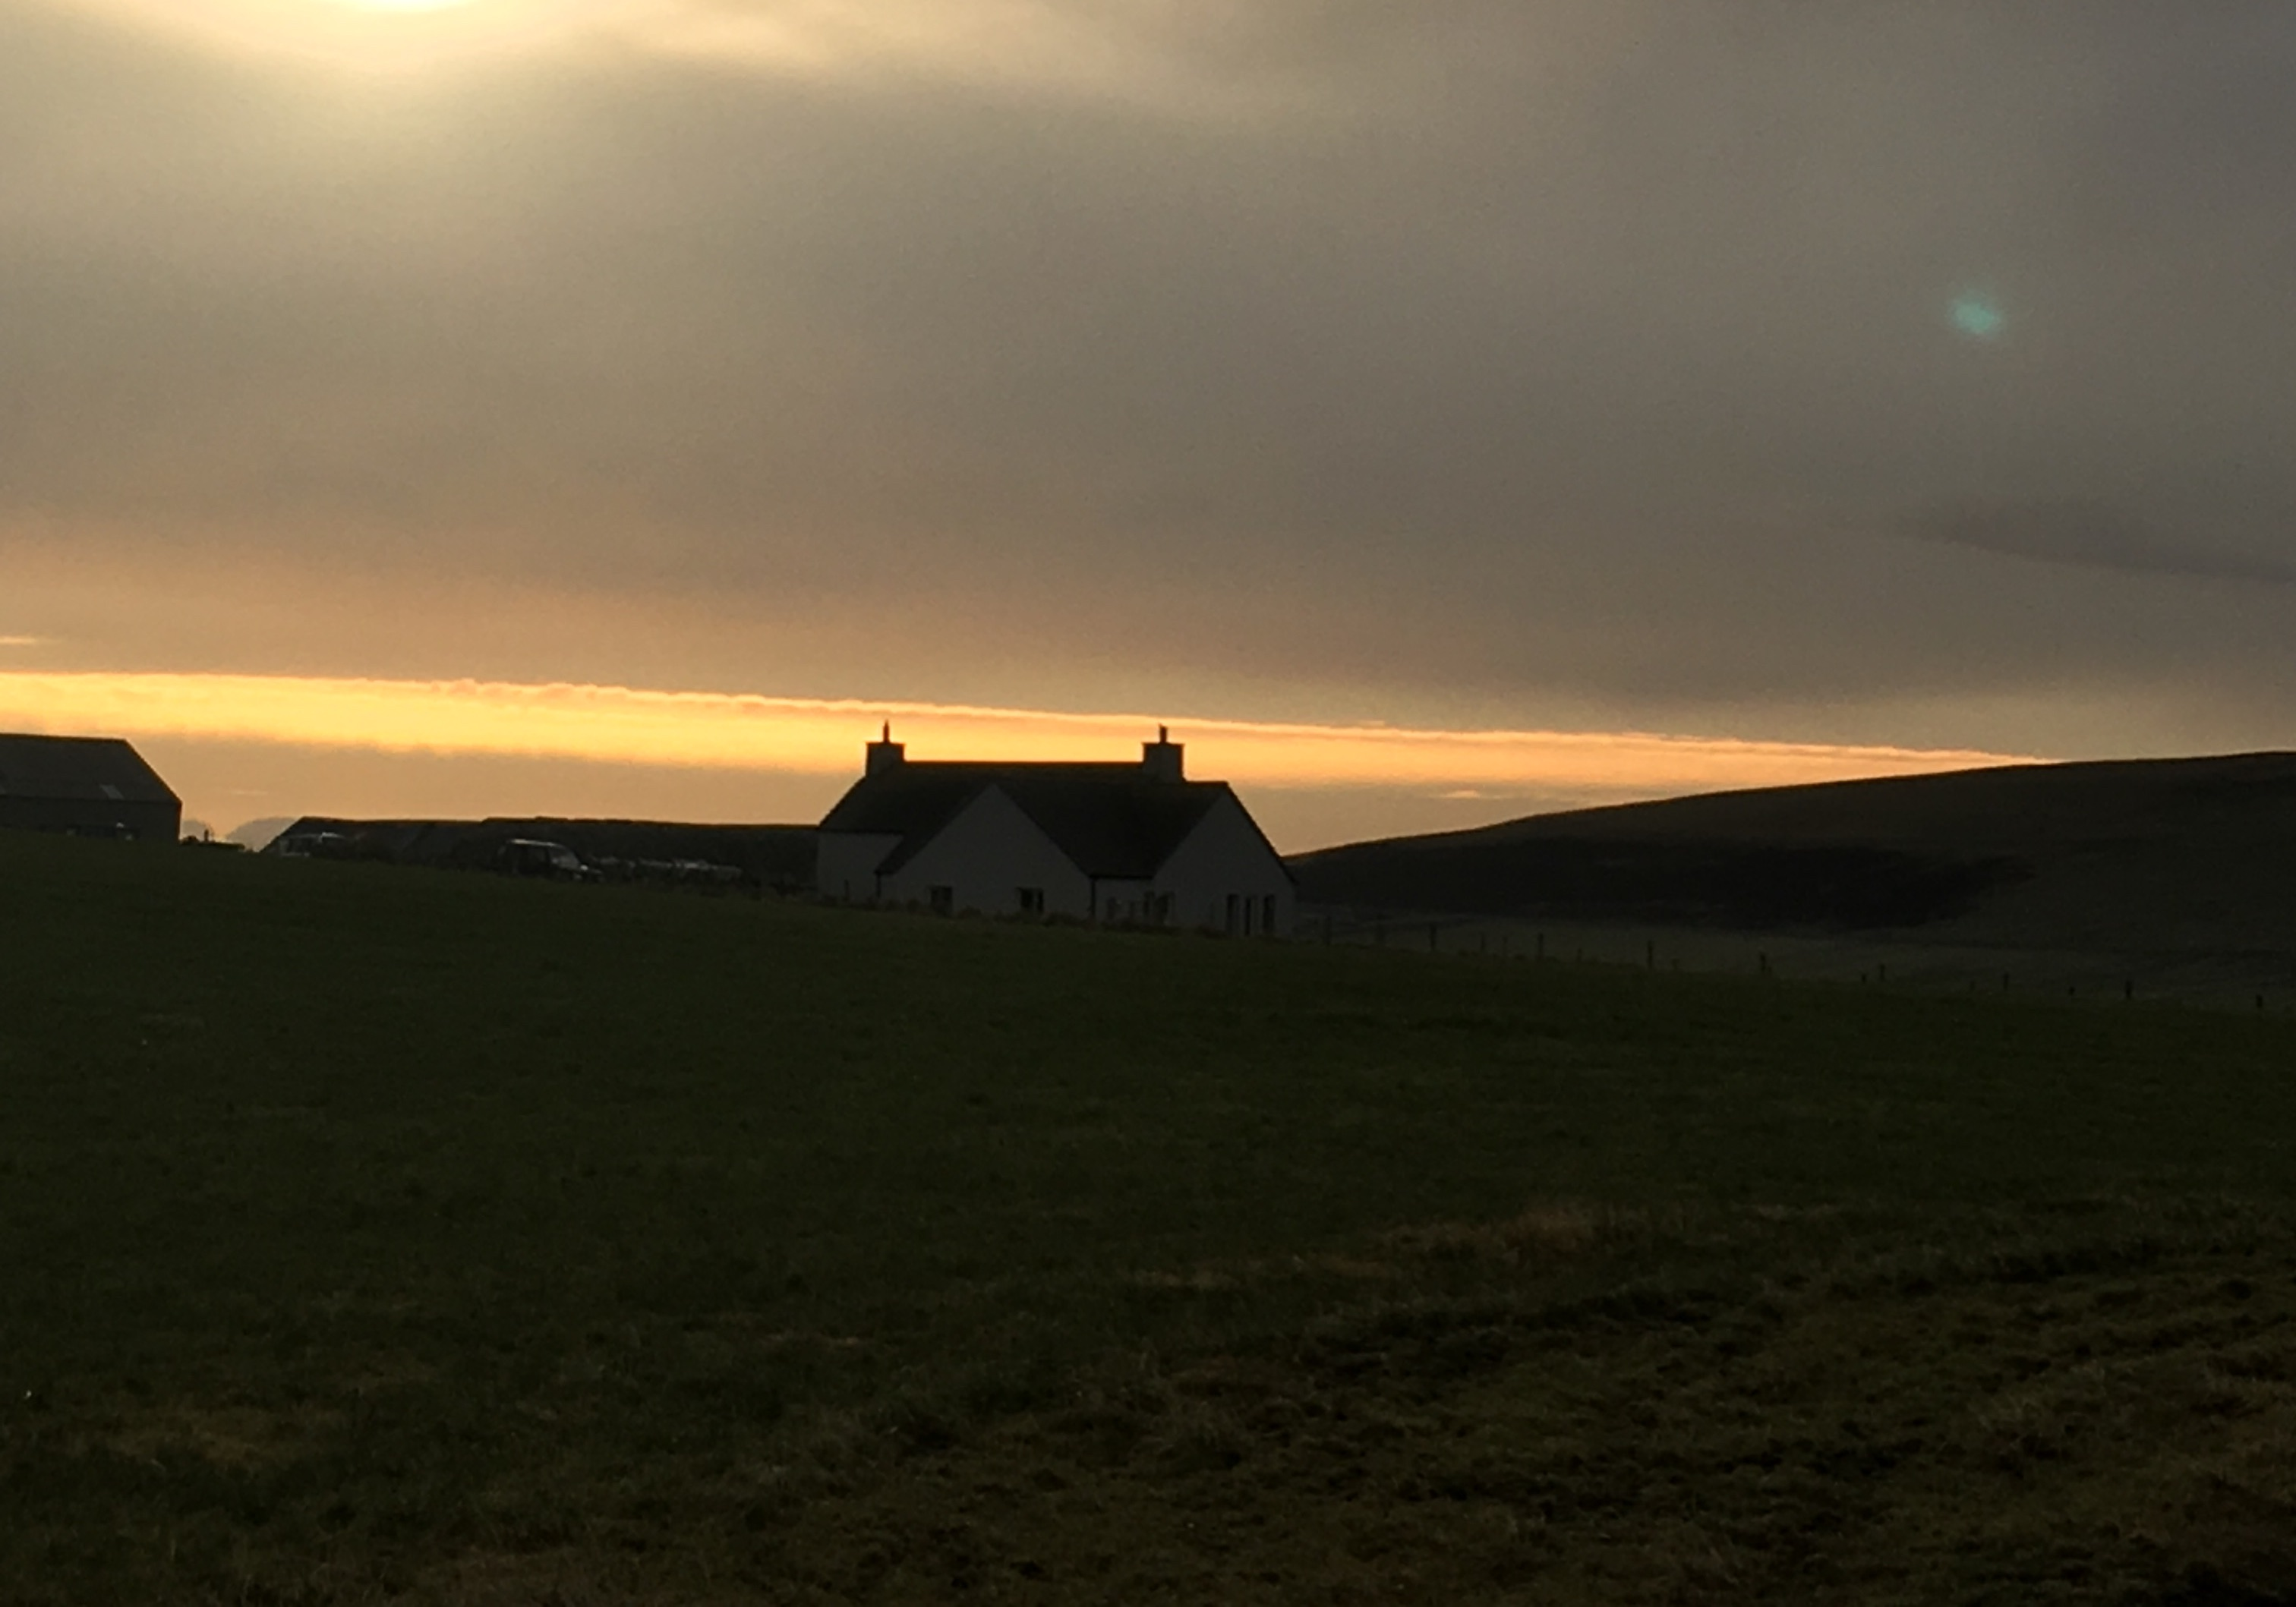 Sunset over the croft